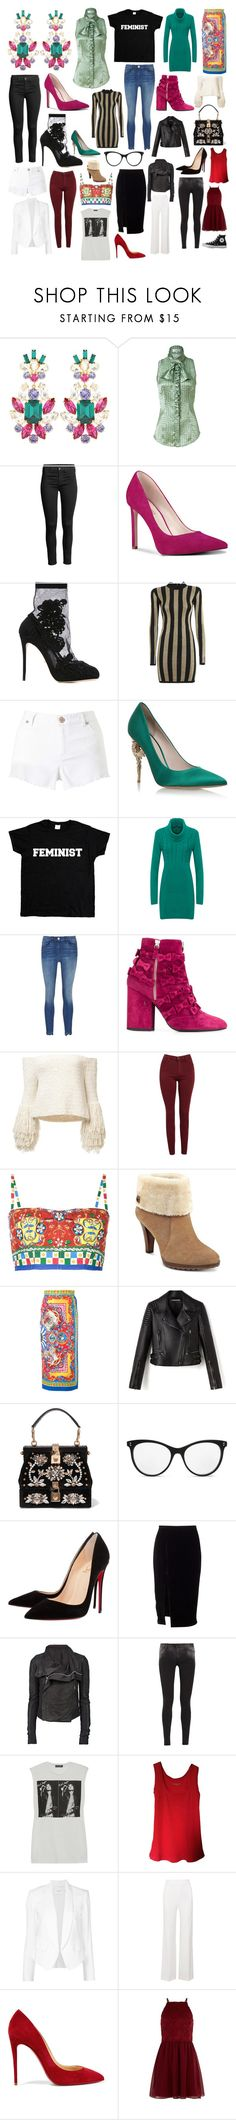 """Some of my favorite things #58"" by andyarana ❤ liked on Polyvore featuring Dolce&Gabbana, L'Wren Scott, Nine West, Balmain, Miss Selfridge, RALPH & RUSSO, WearAll, 3x1, Laurence Dacade and AG Adriano Goldschmied"